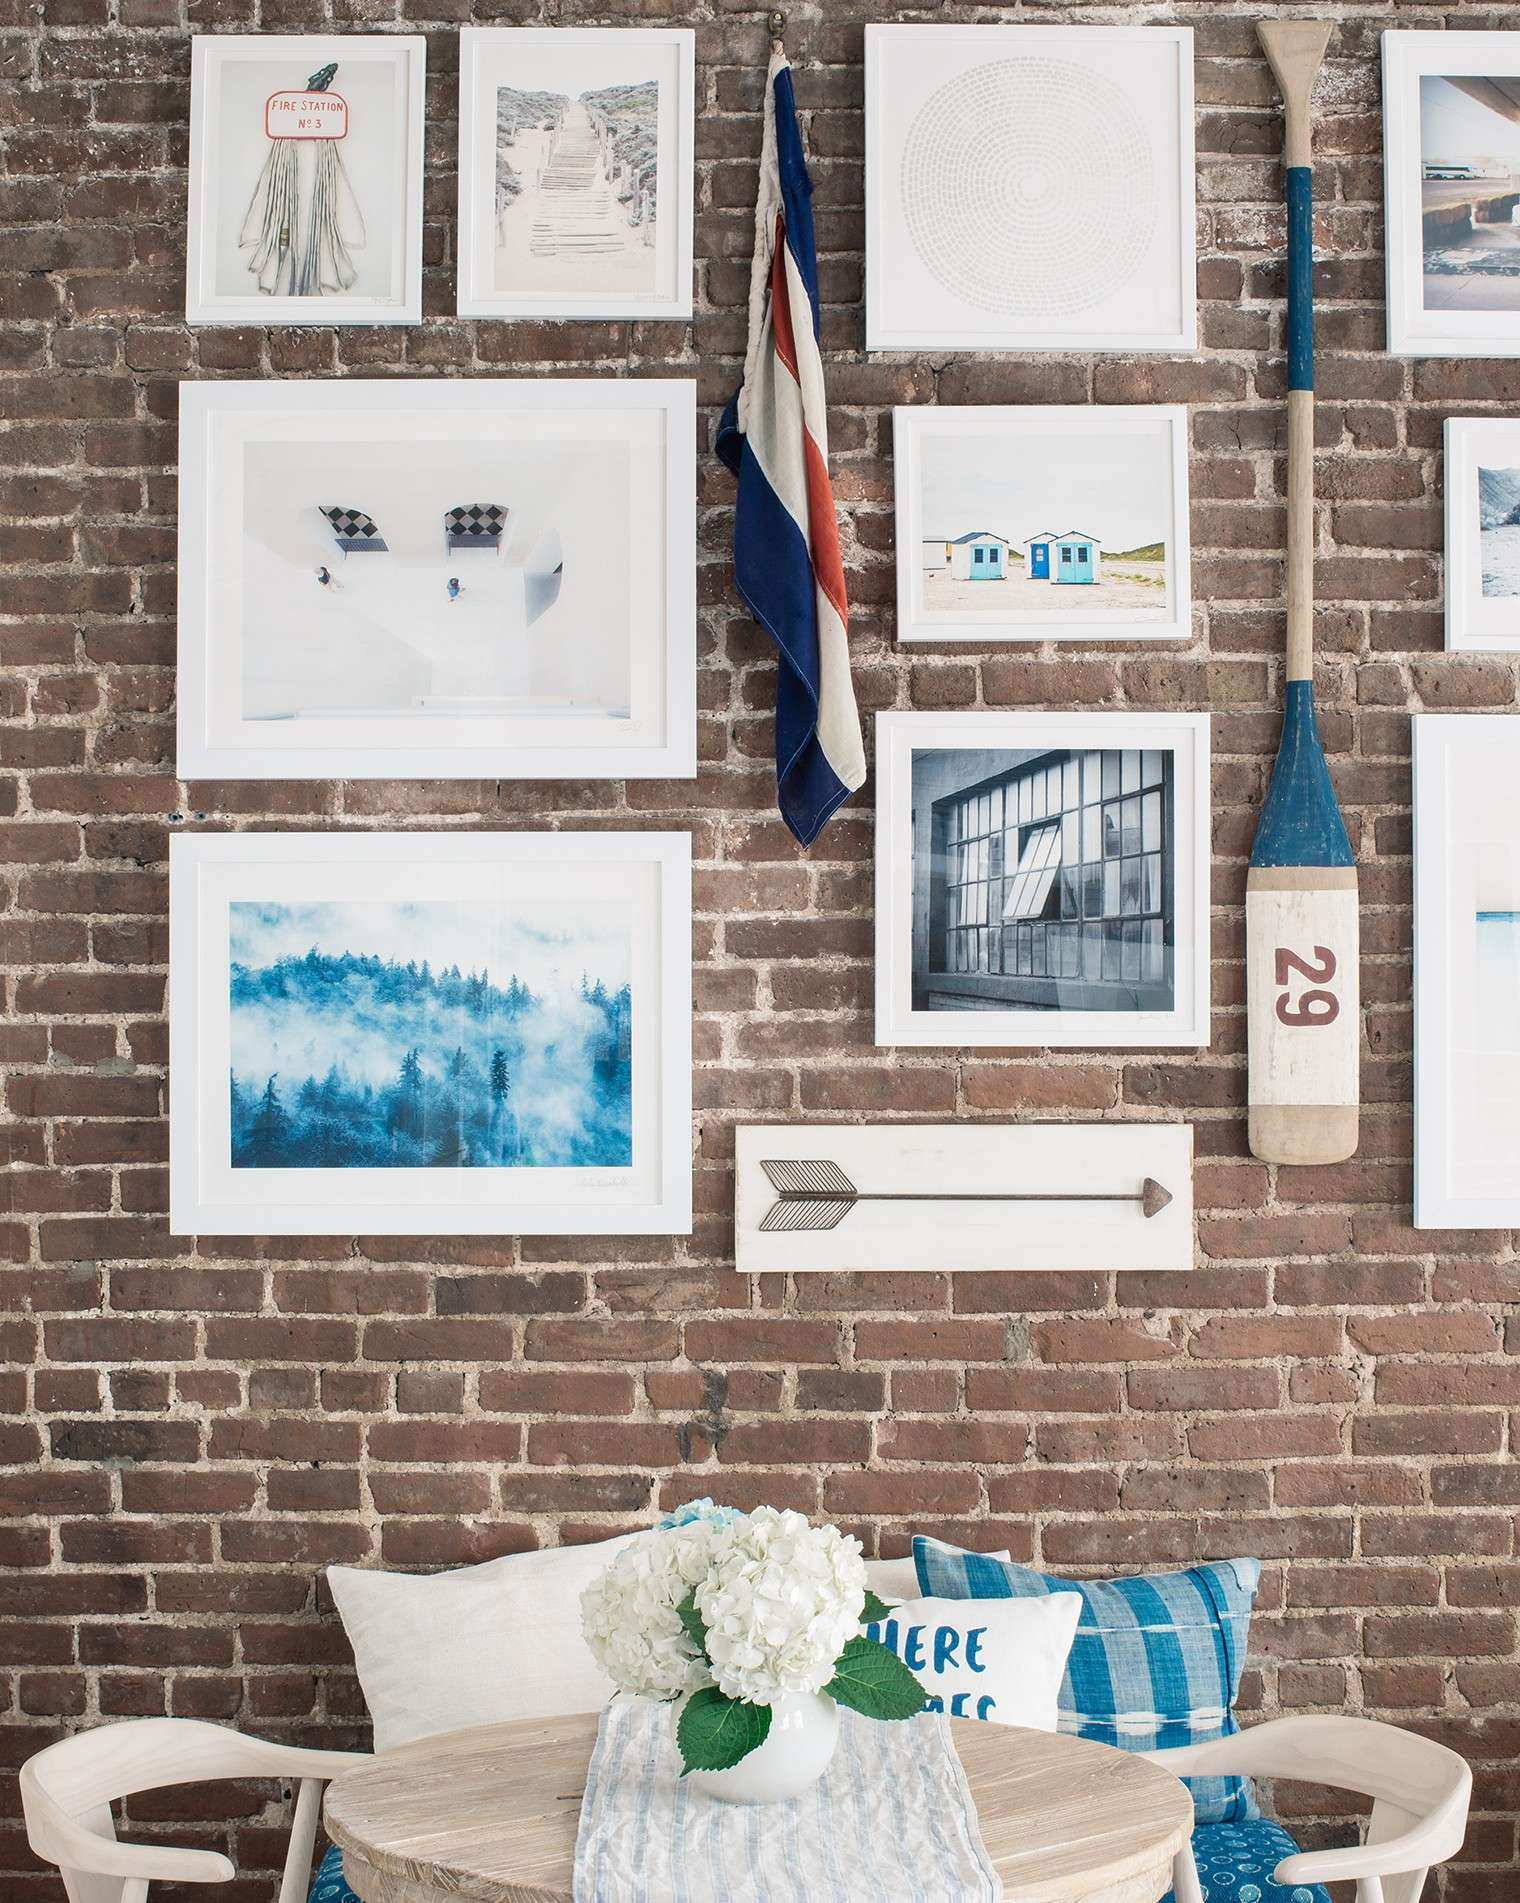 How to Hang A Gallery Wall on Exposed Brick Walls Bright Bazaar by